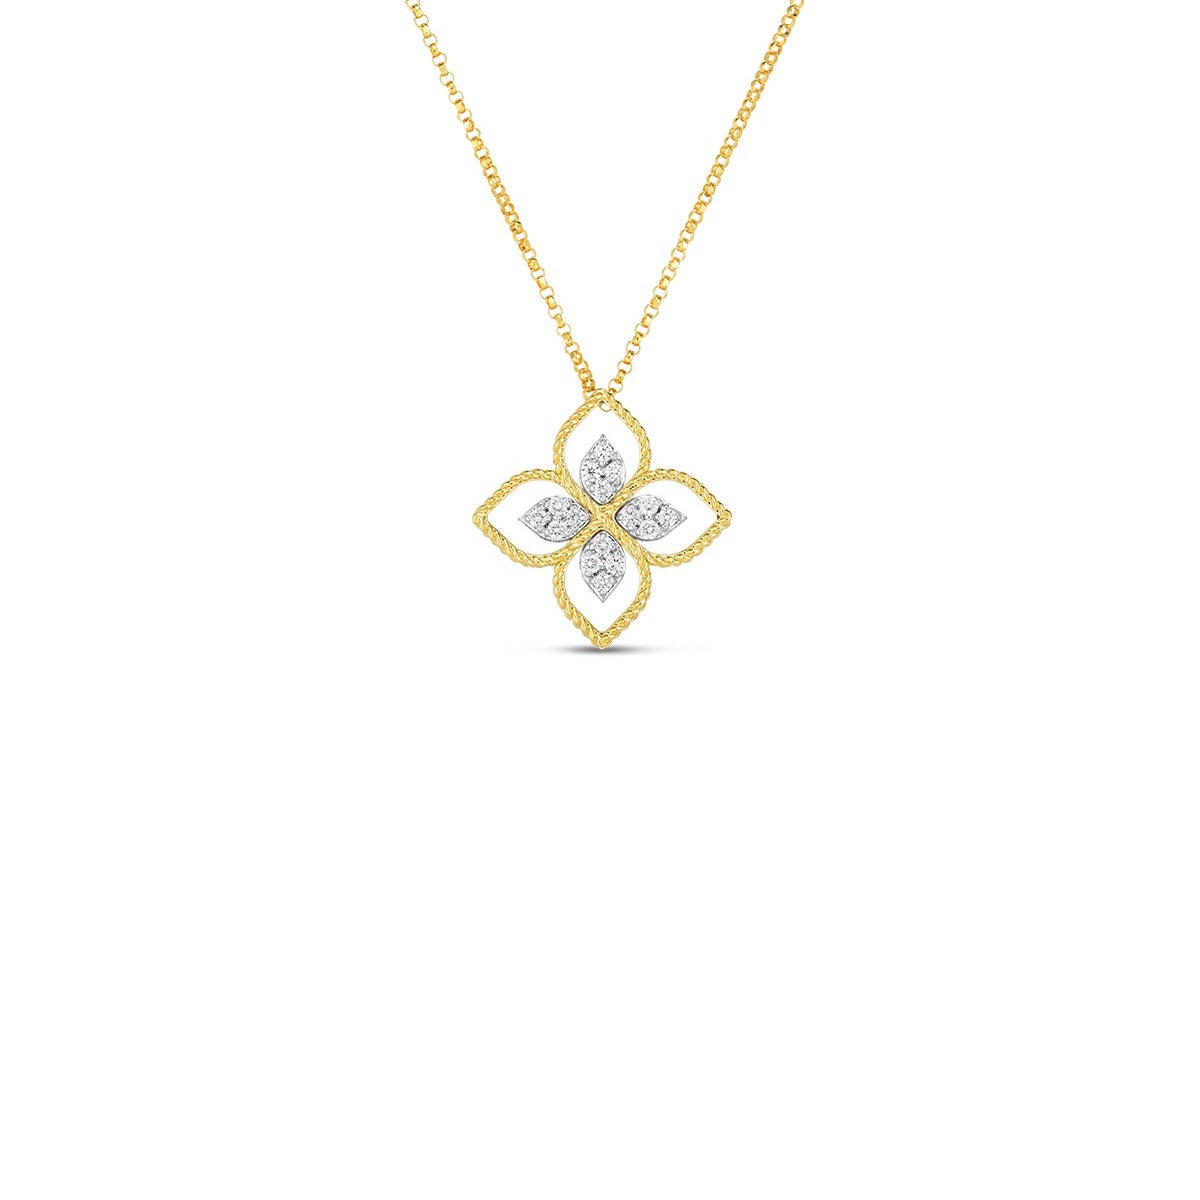 18K Yellow Gold Principessa Large Flower Pendant With Diamond Accents